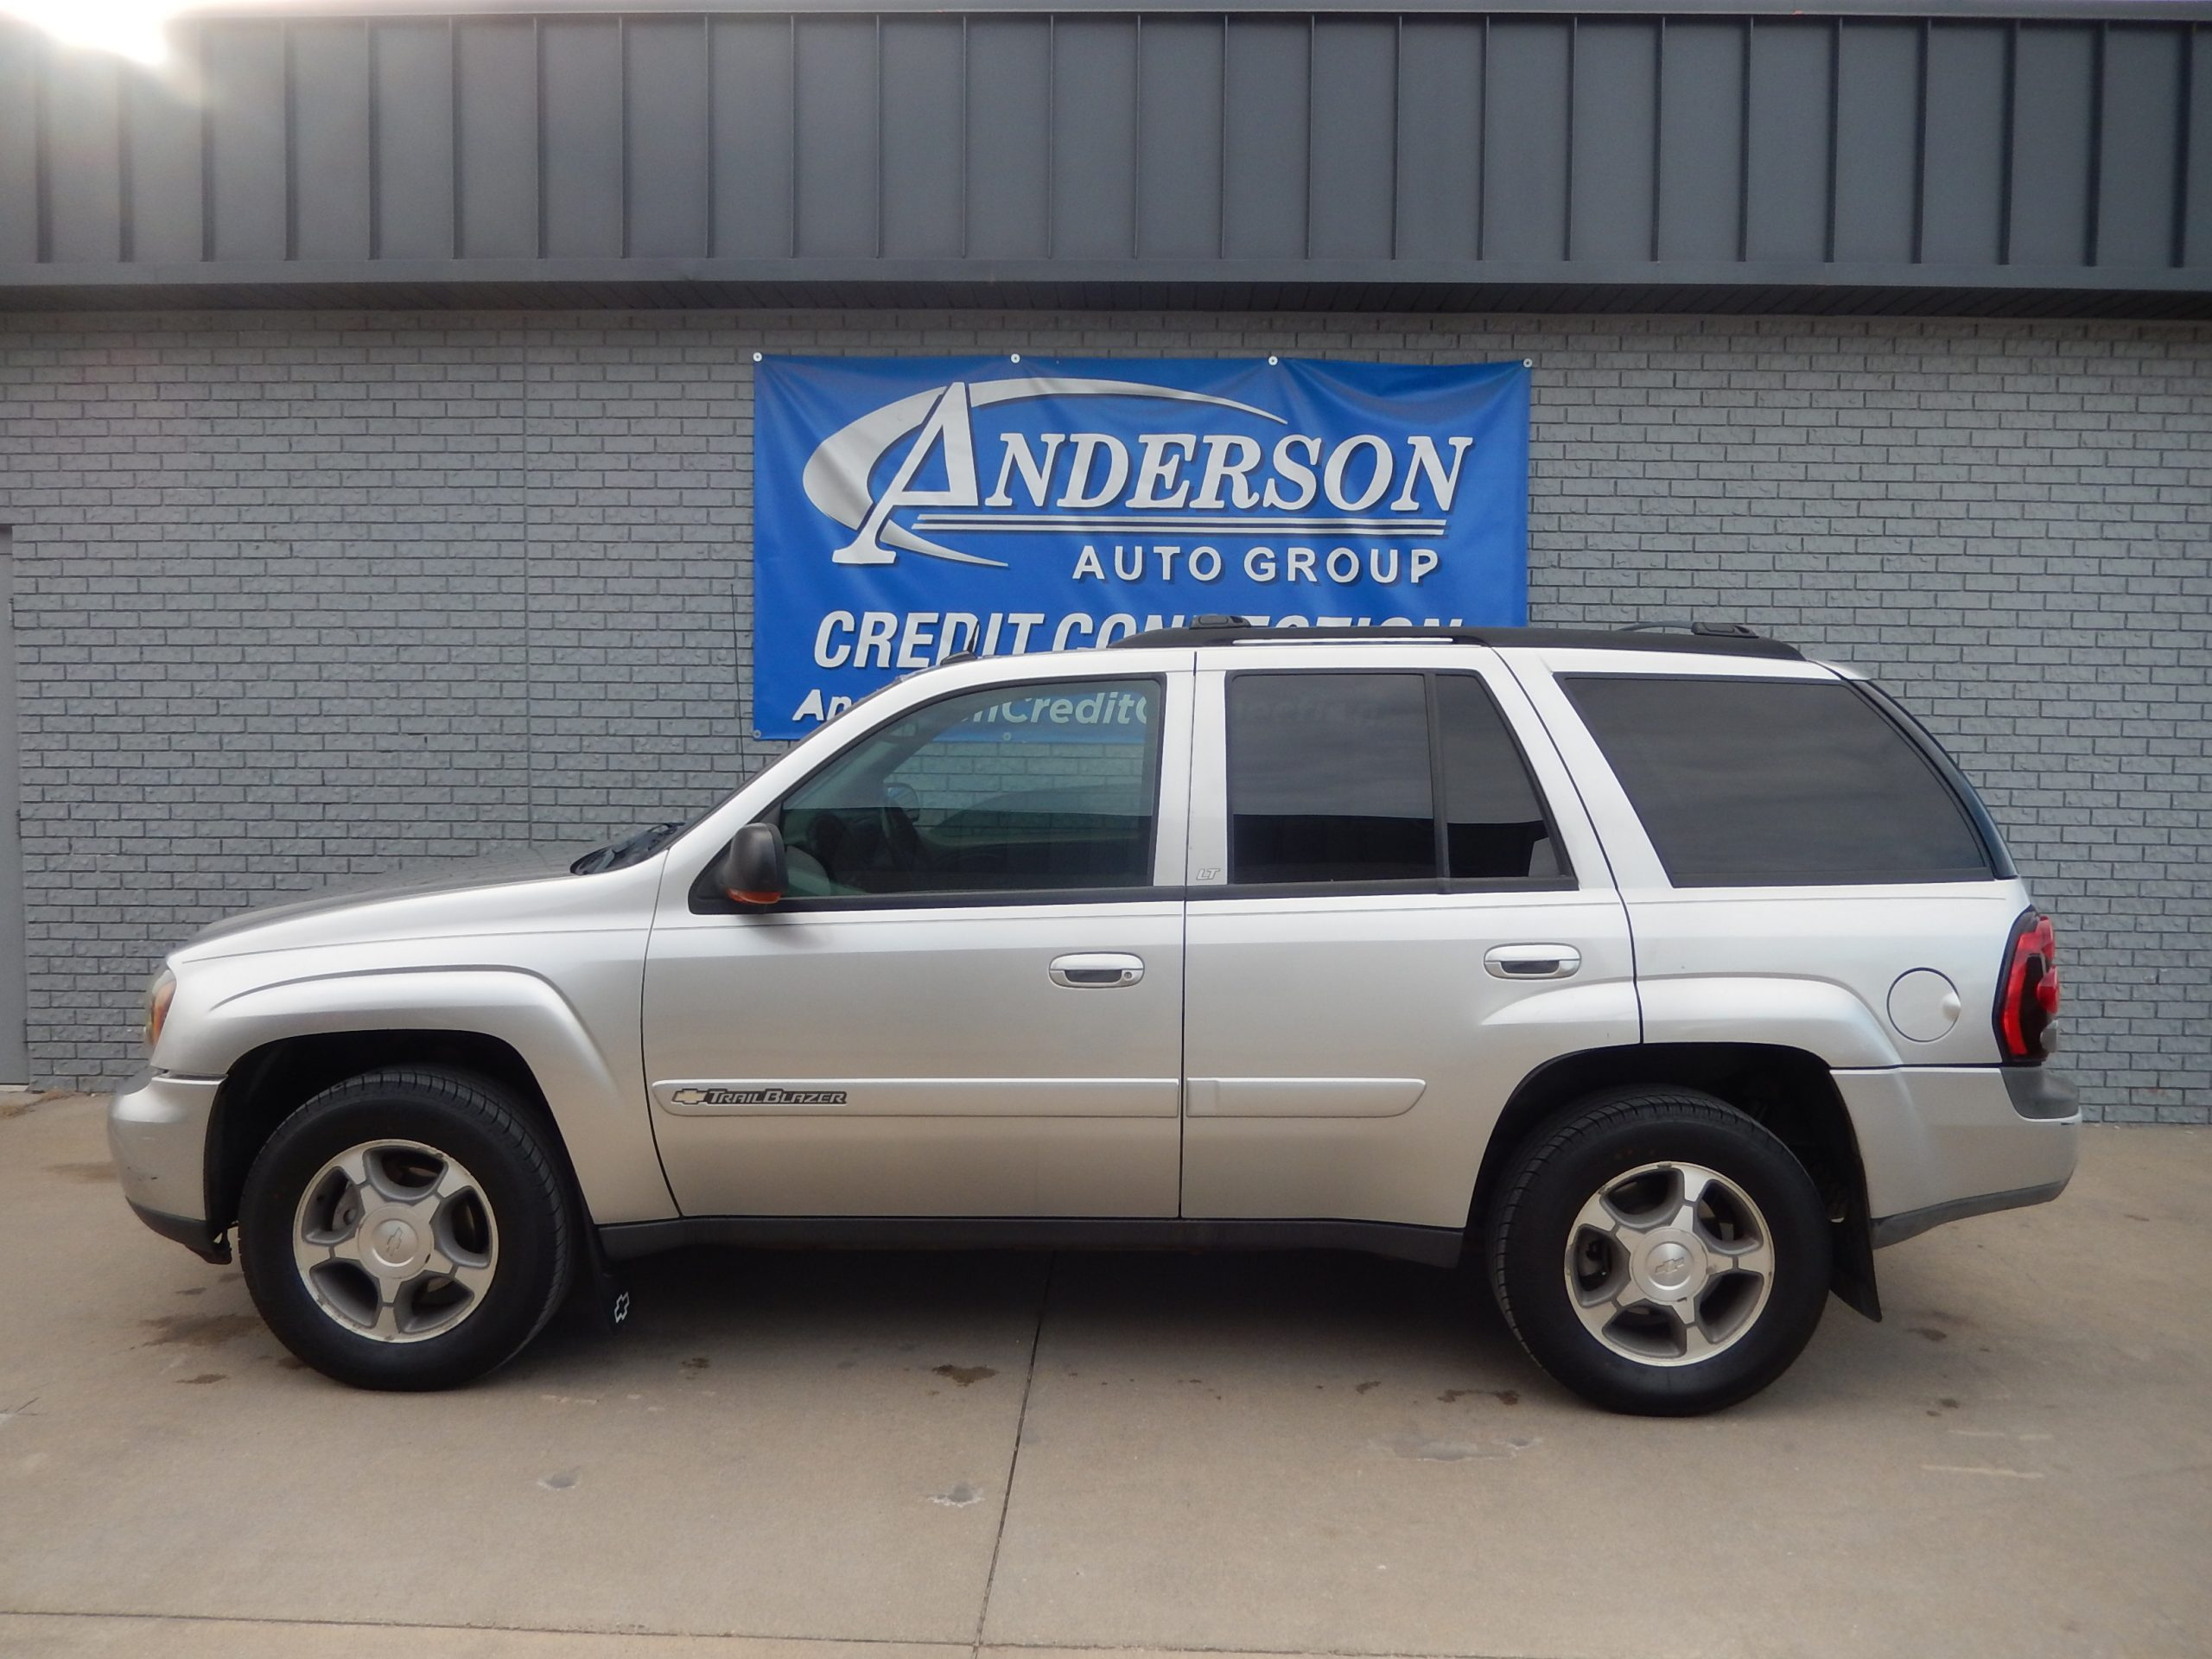 2004 chevy trailblazer anderson credit connection lincoln ne 2004 chevy trailblazer anderson